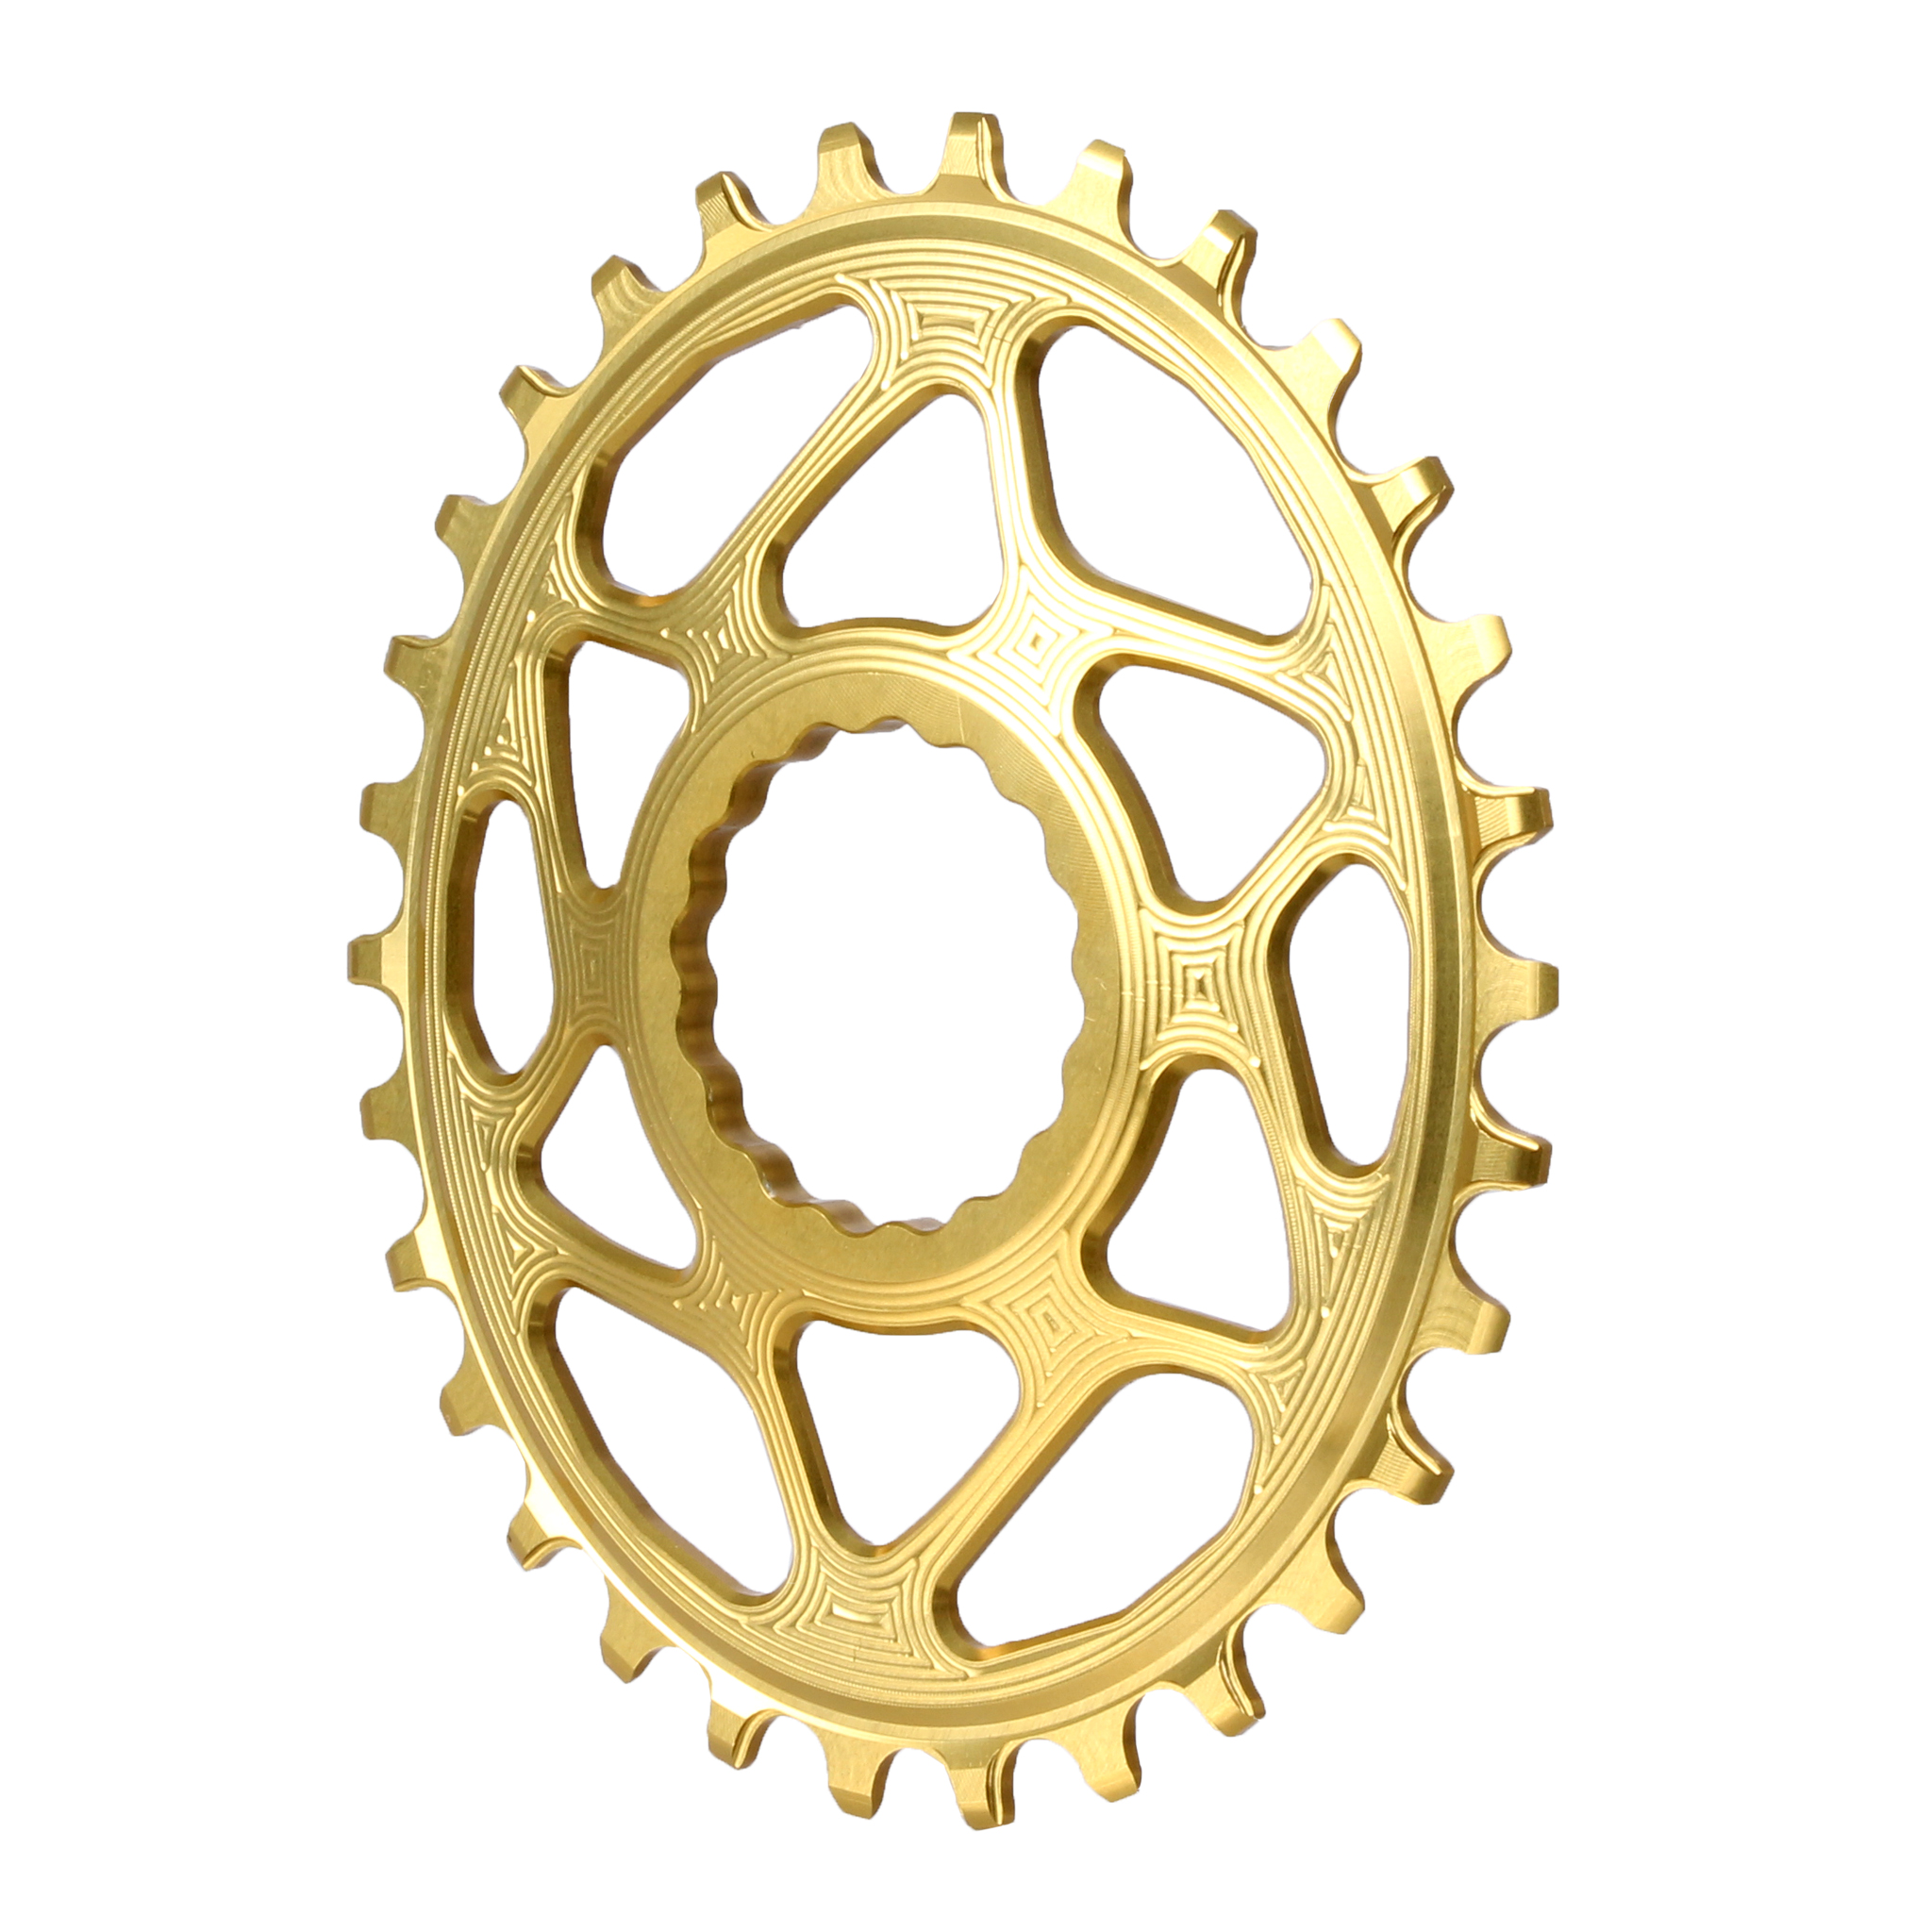 Spiderless Cinch DM Oval Boost Chainring, 30T - Gold